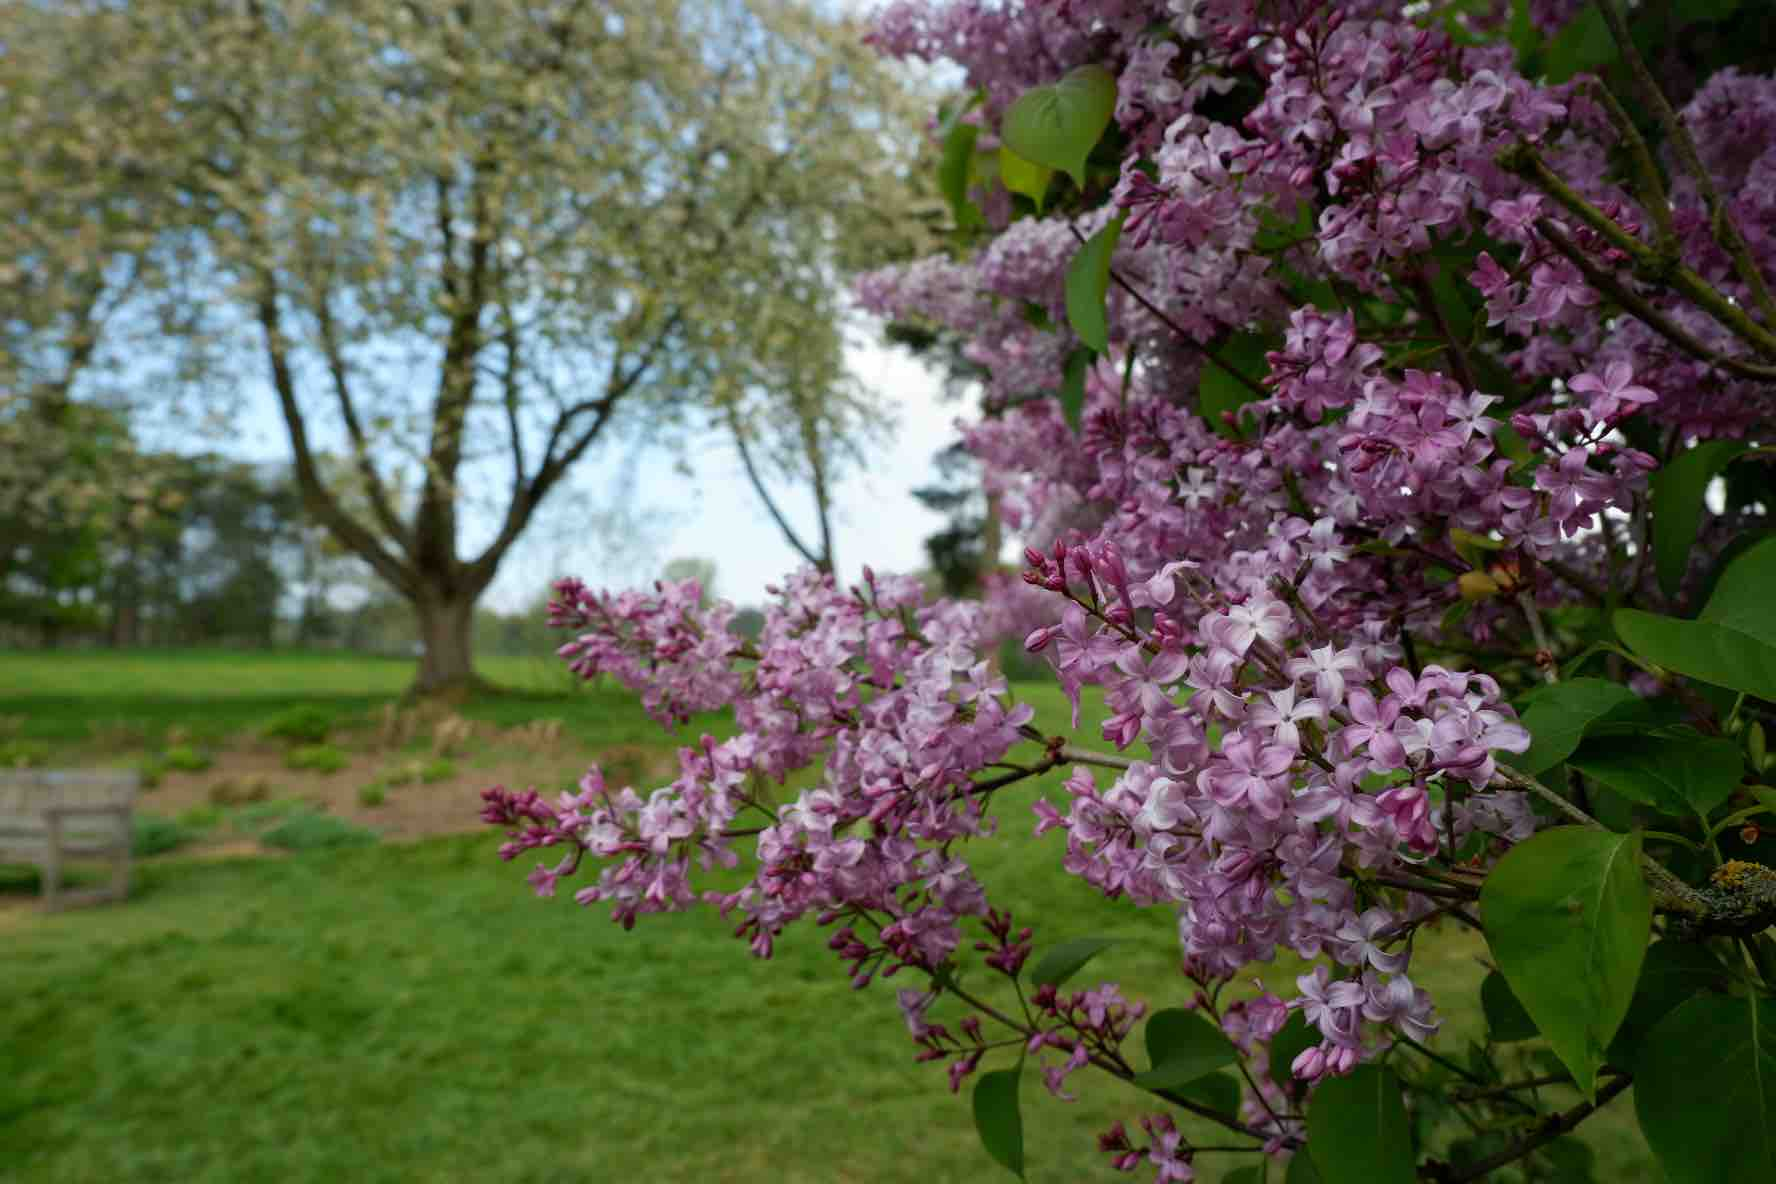 We also saw some lovely lilac